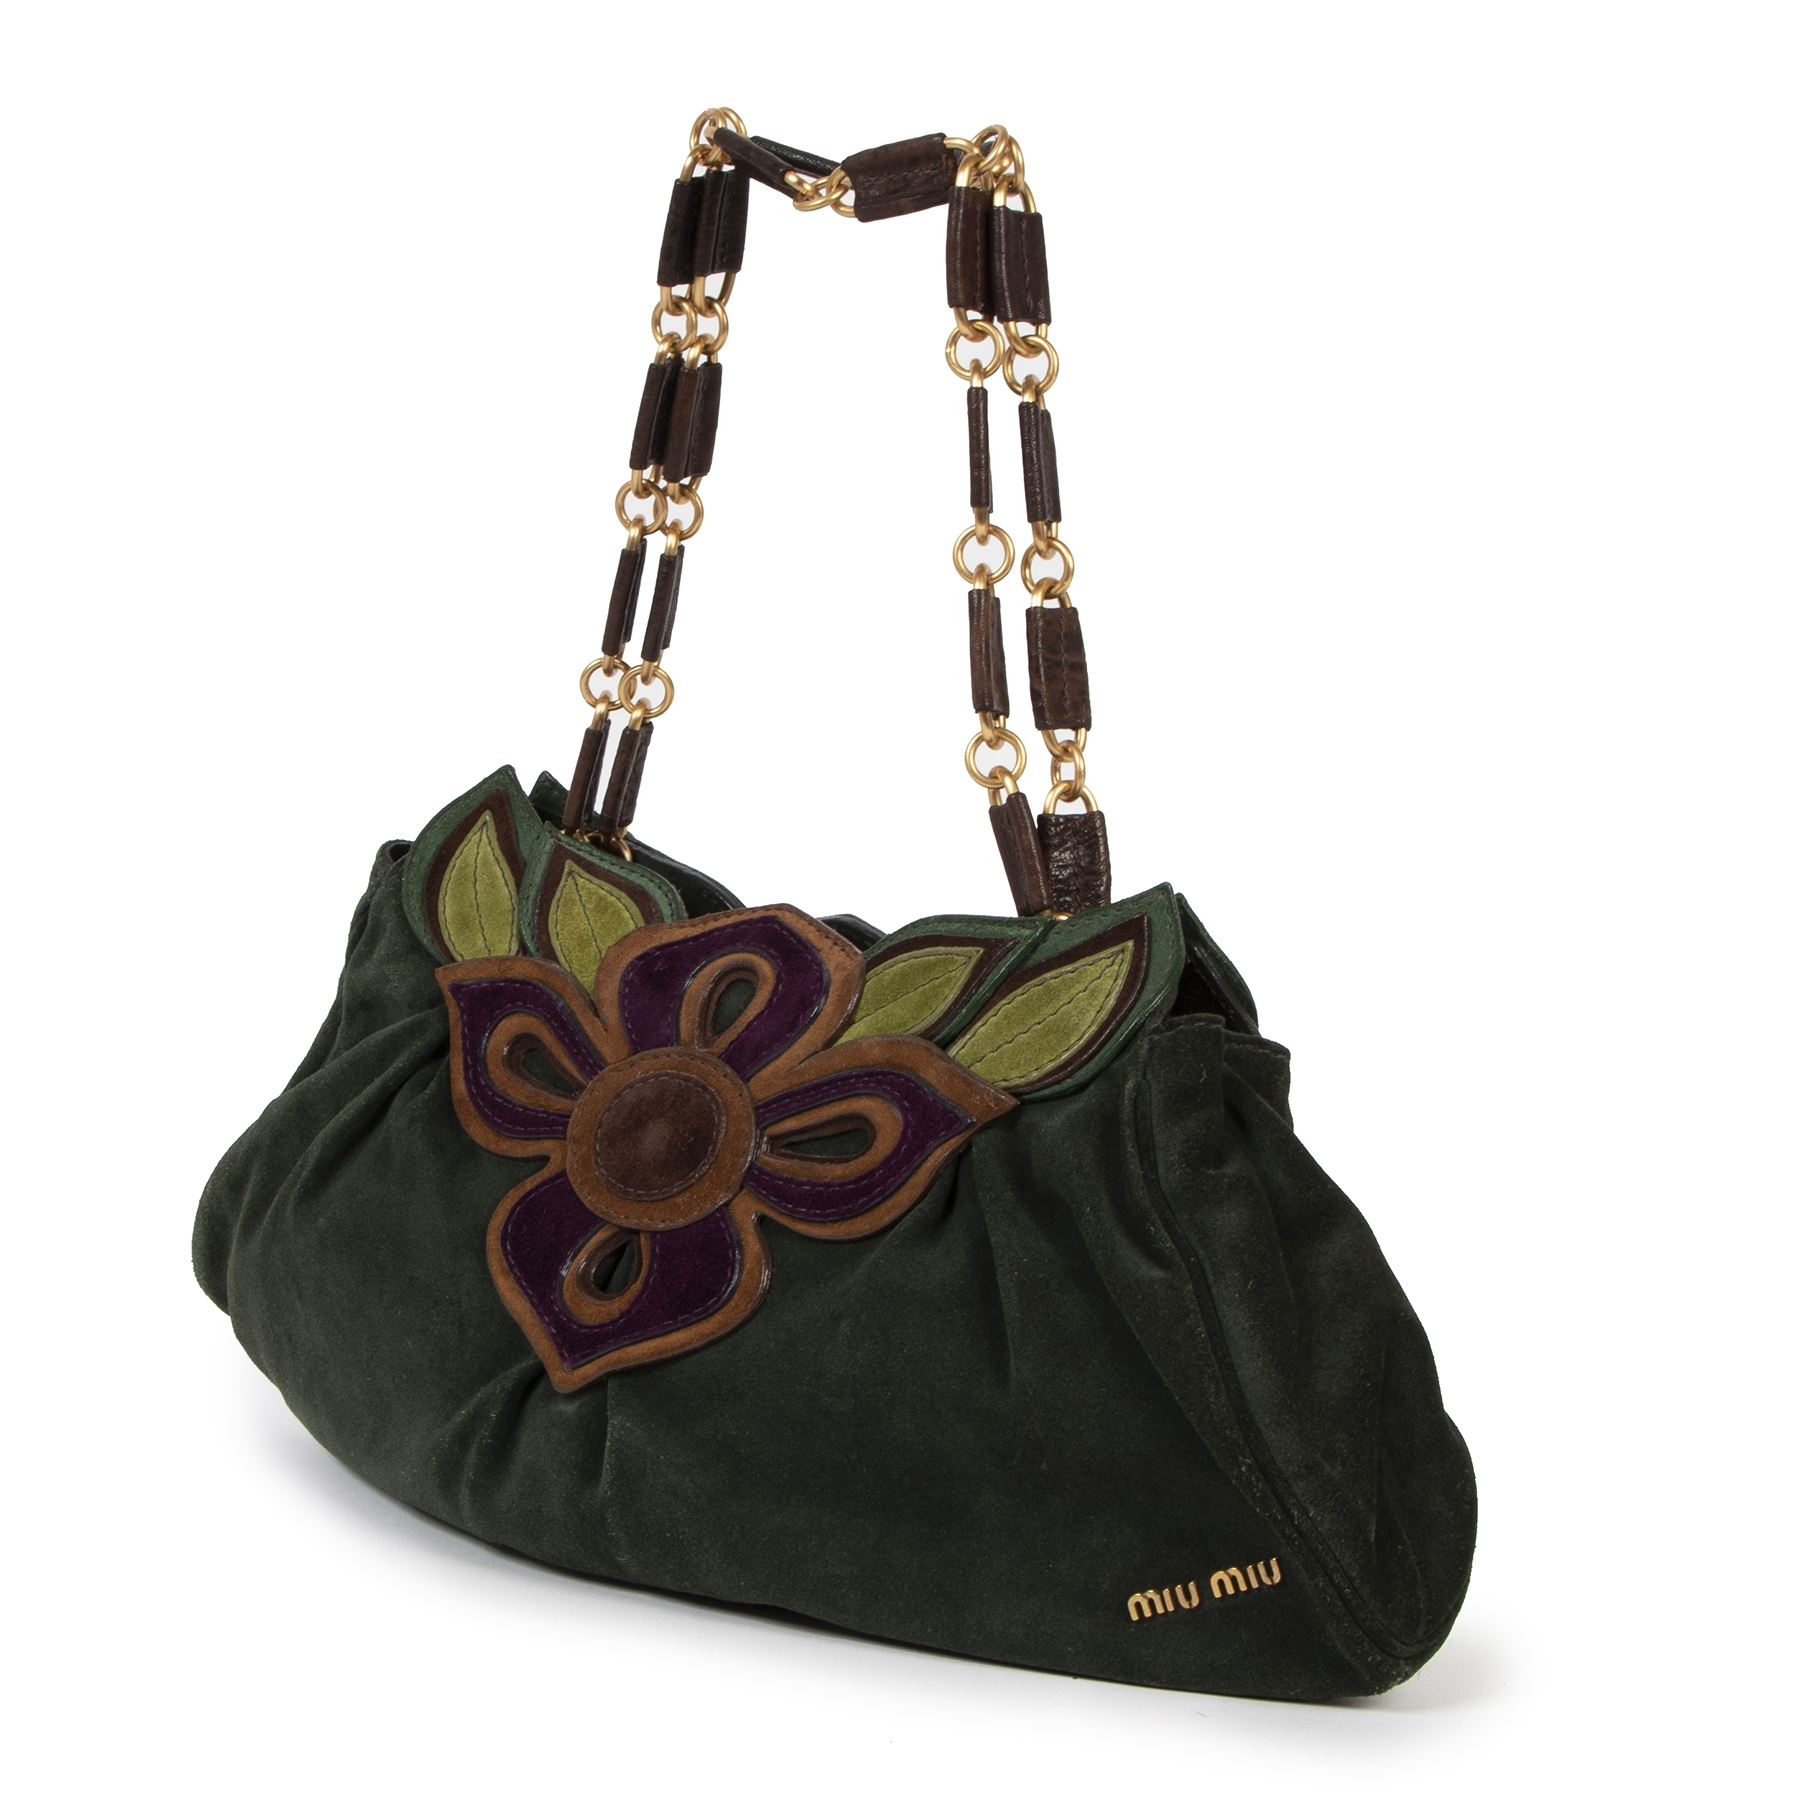 Authentieke tweedehands vintage Miu Miu Green Suede Flower Shoulder Bag koop online webshop LabelLOV